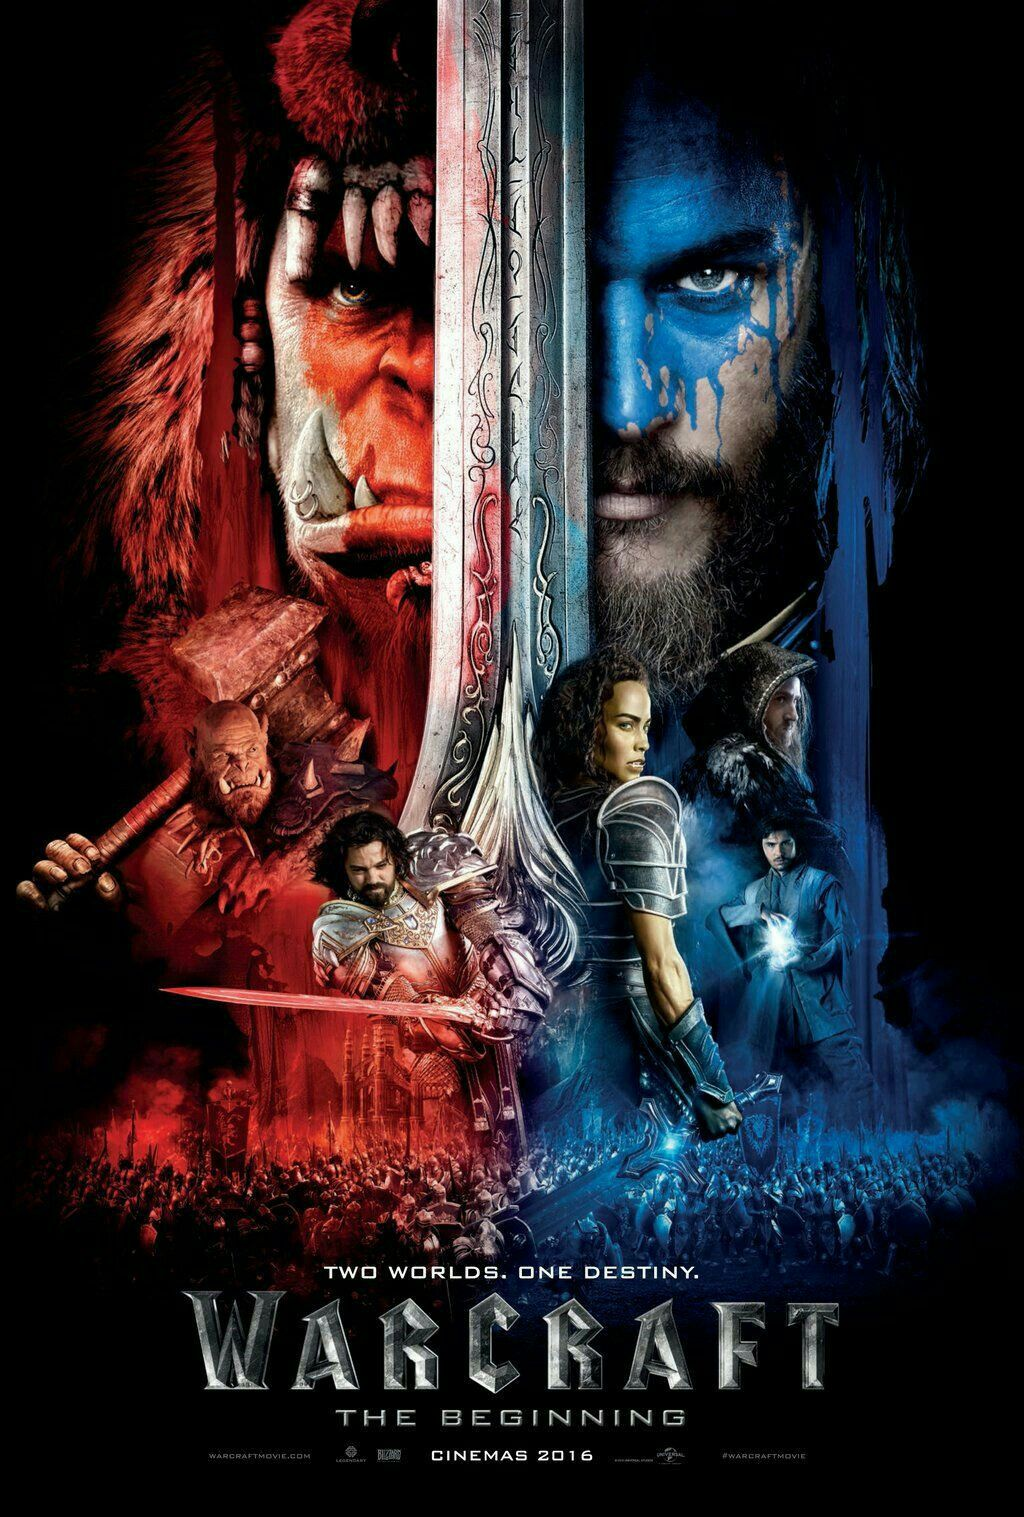 Pin by Mark Montgomery on Movies I Like Warcraft movie